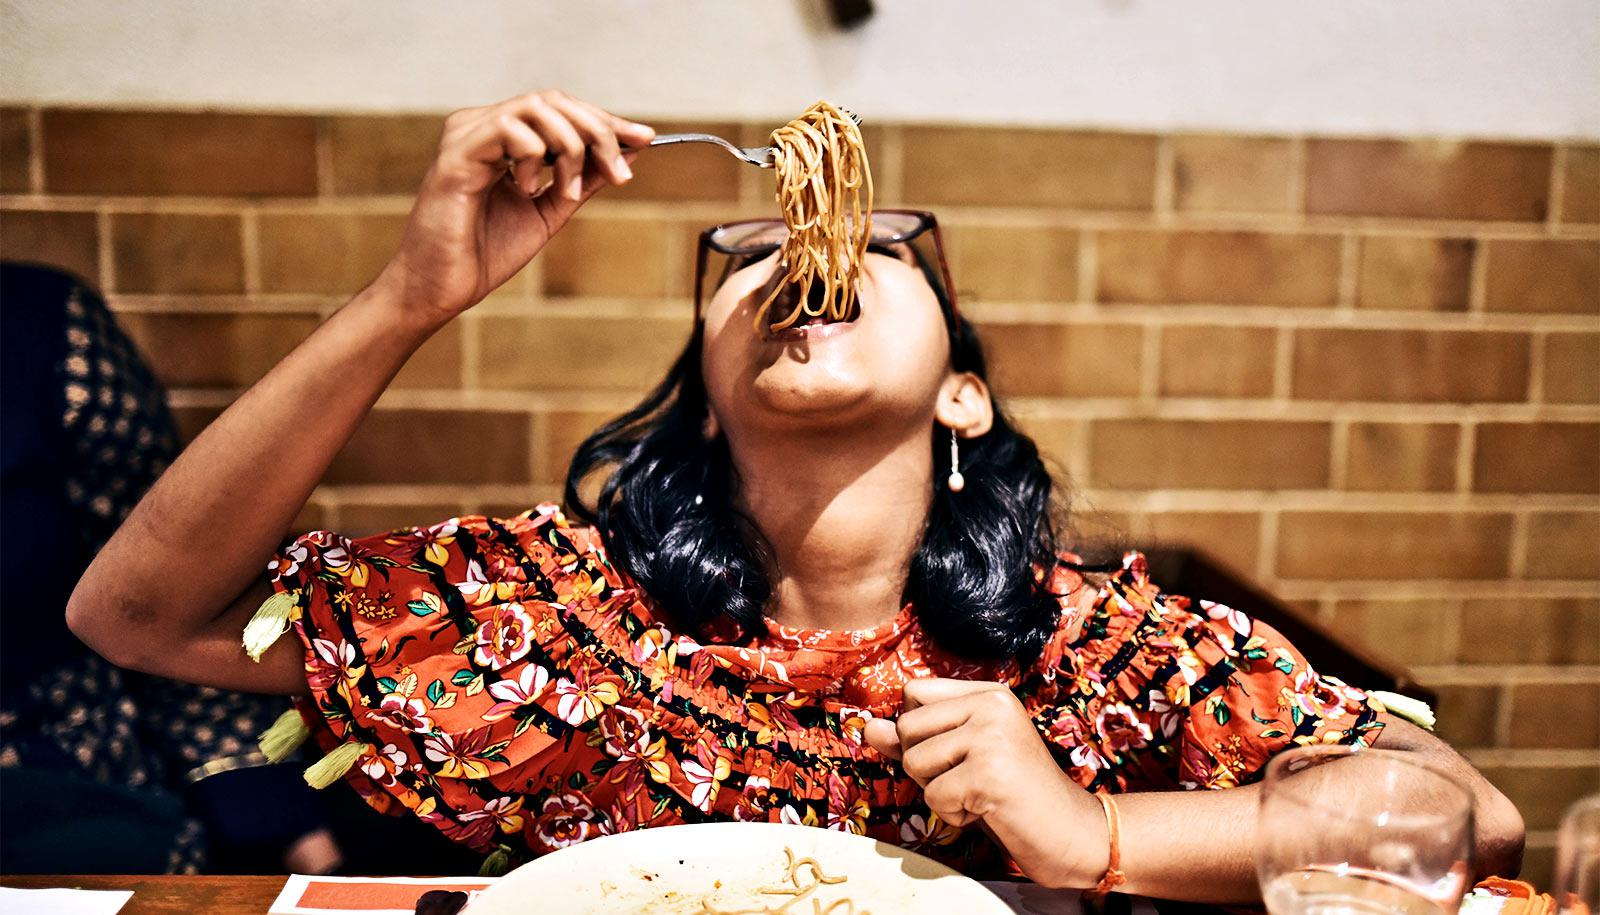 A young woman in an orange dress leans her head back to eat a huge forkful of noodles with a brick wall in the background